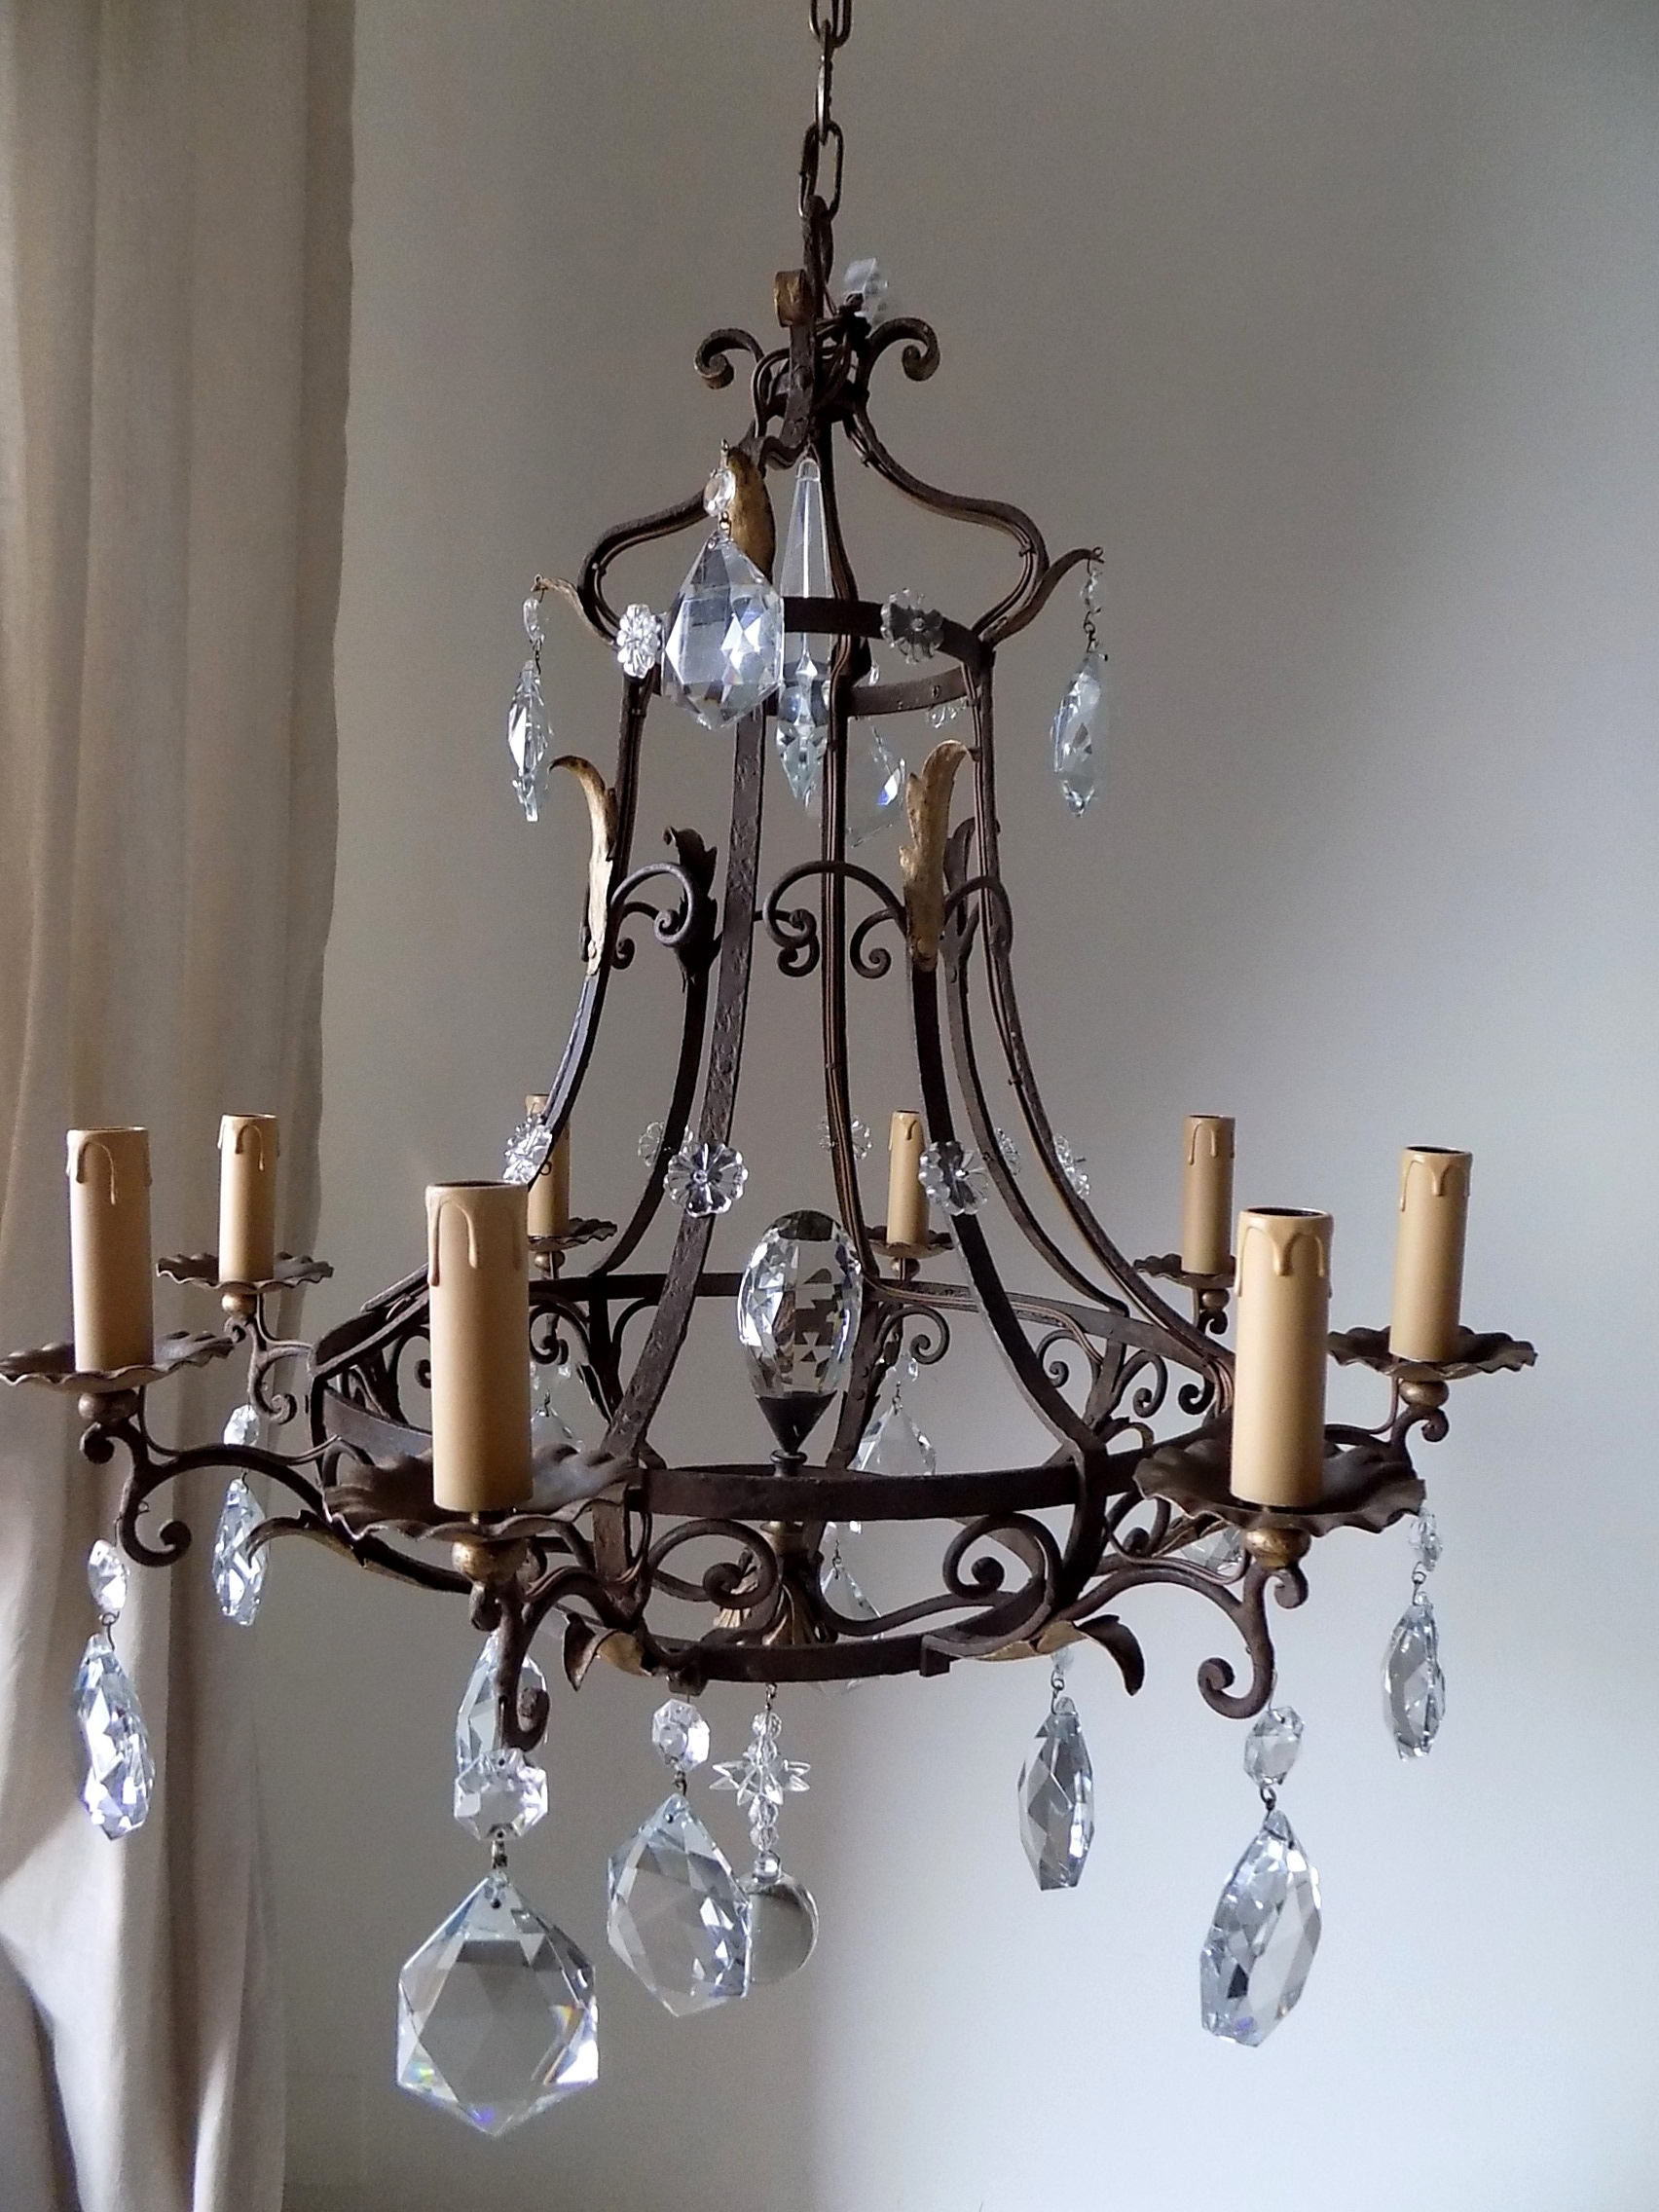 Popular Antique French Iron Chandeliers – Dayri With Regard To French Antique Chandeliers (View 16 of 20)